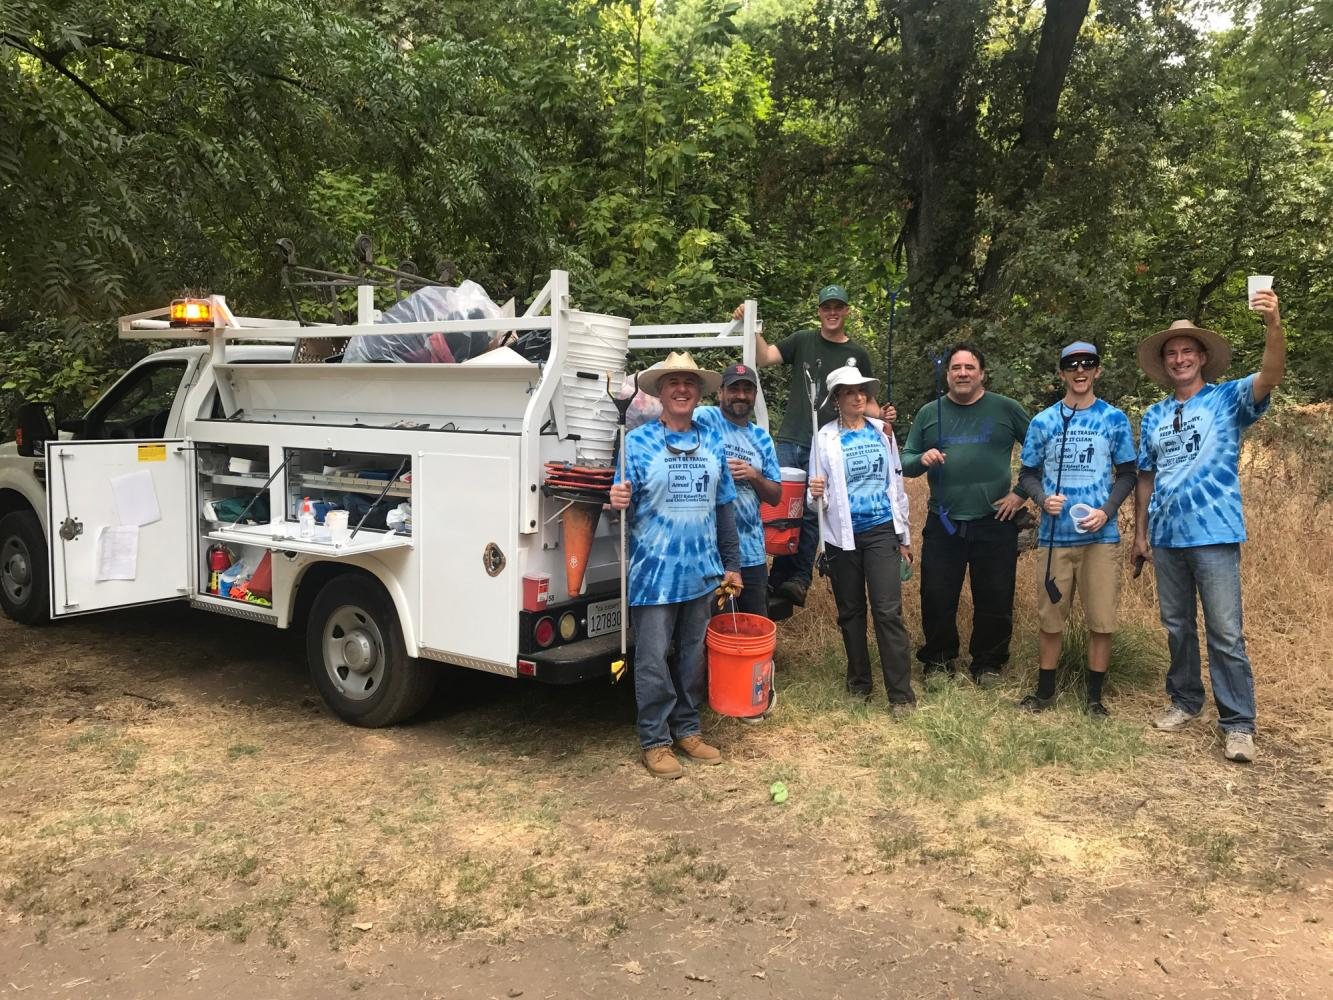 Community contributes to clean local parks